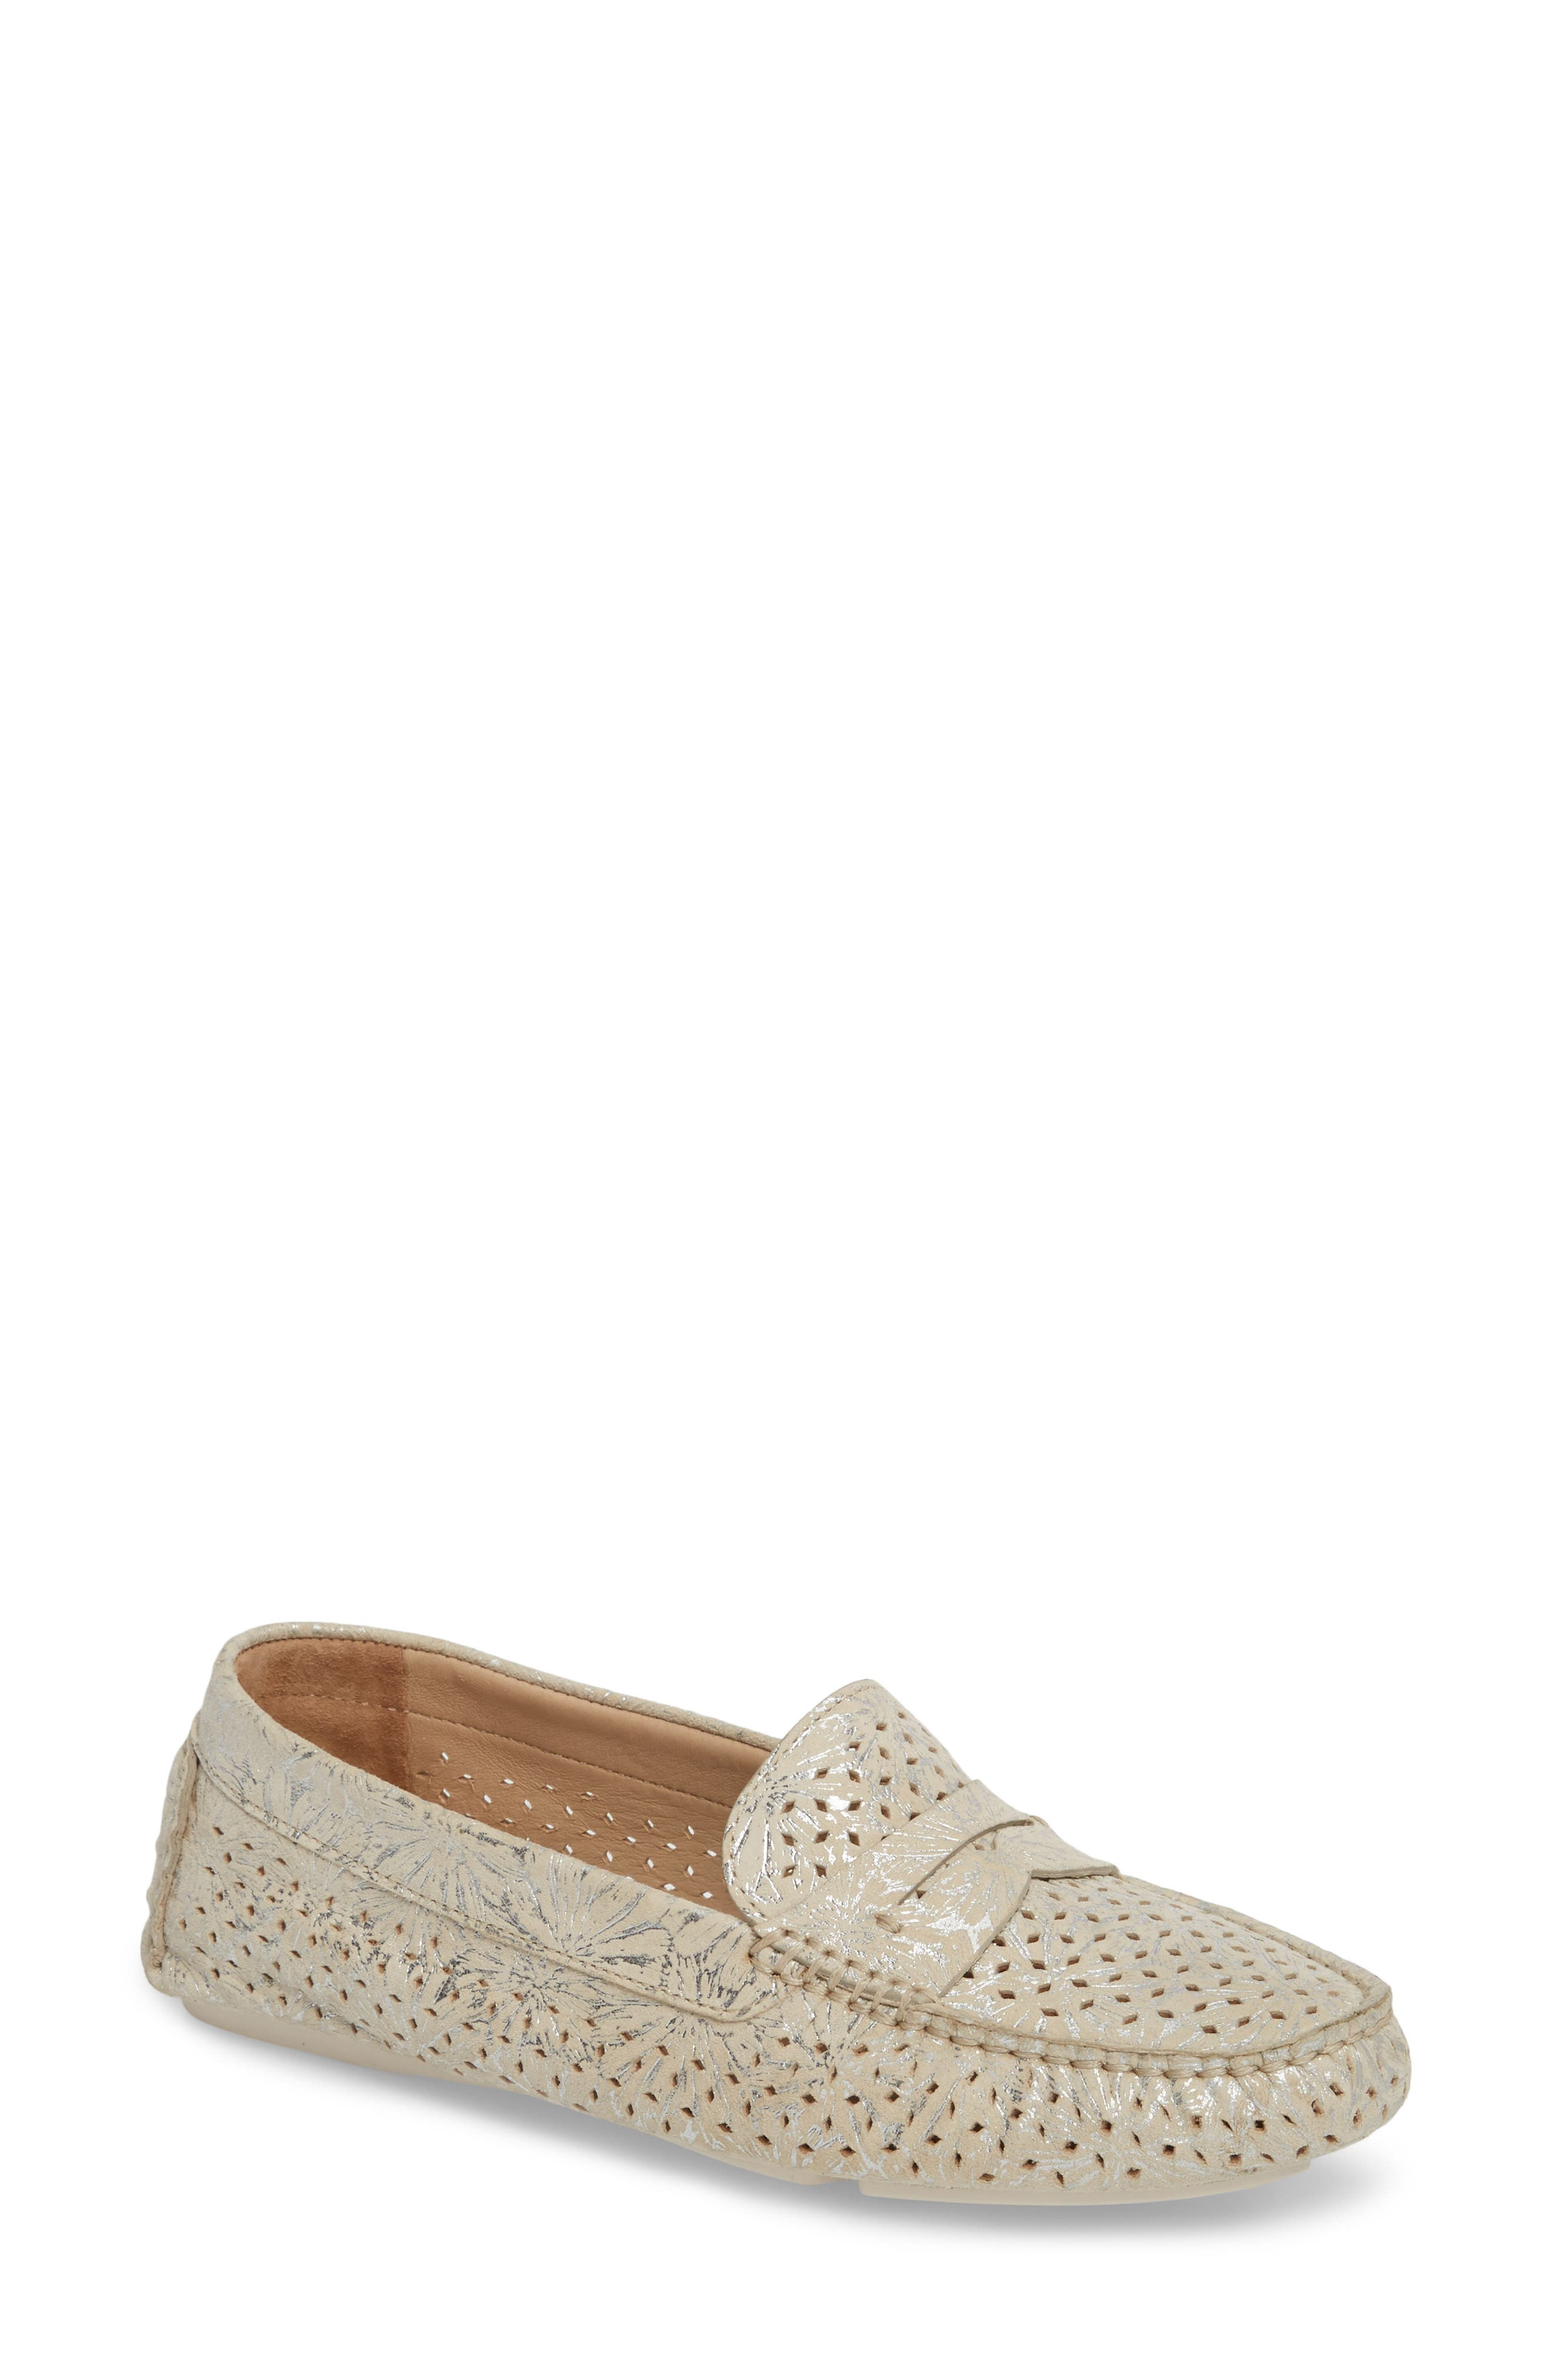 'Maggie' Penny Loafer,                             Main thumbnail 1, color,                             CREAM SUEDE